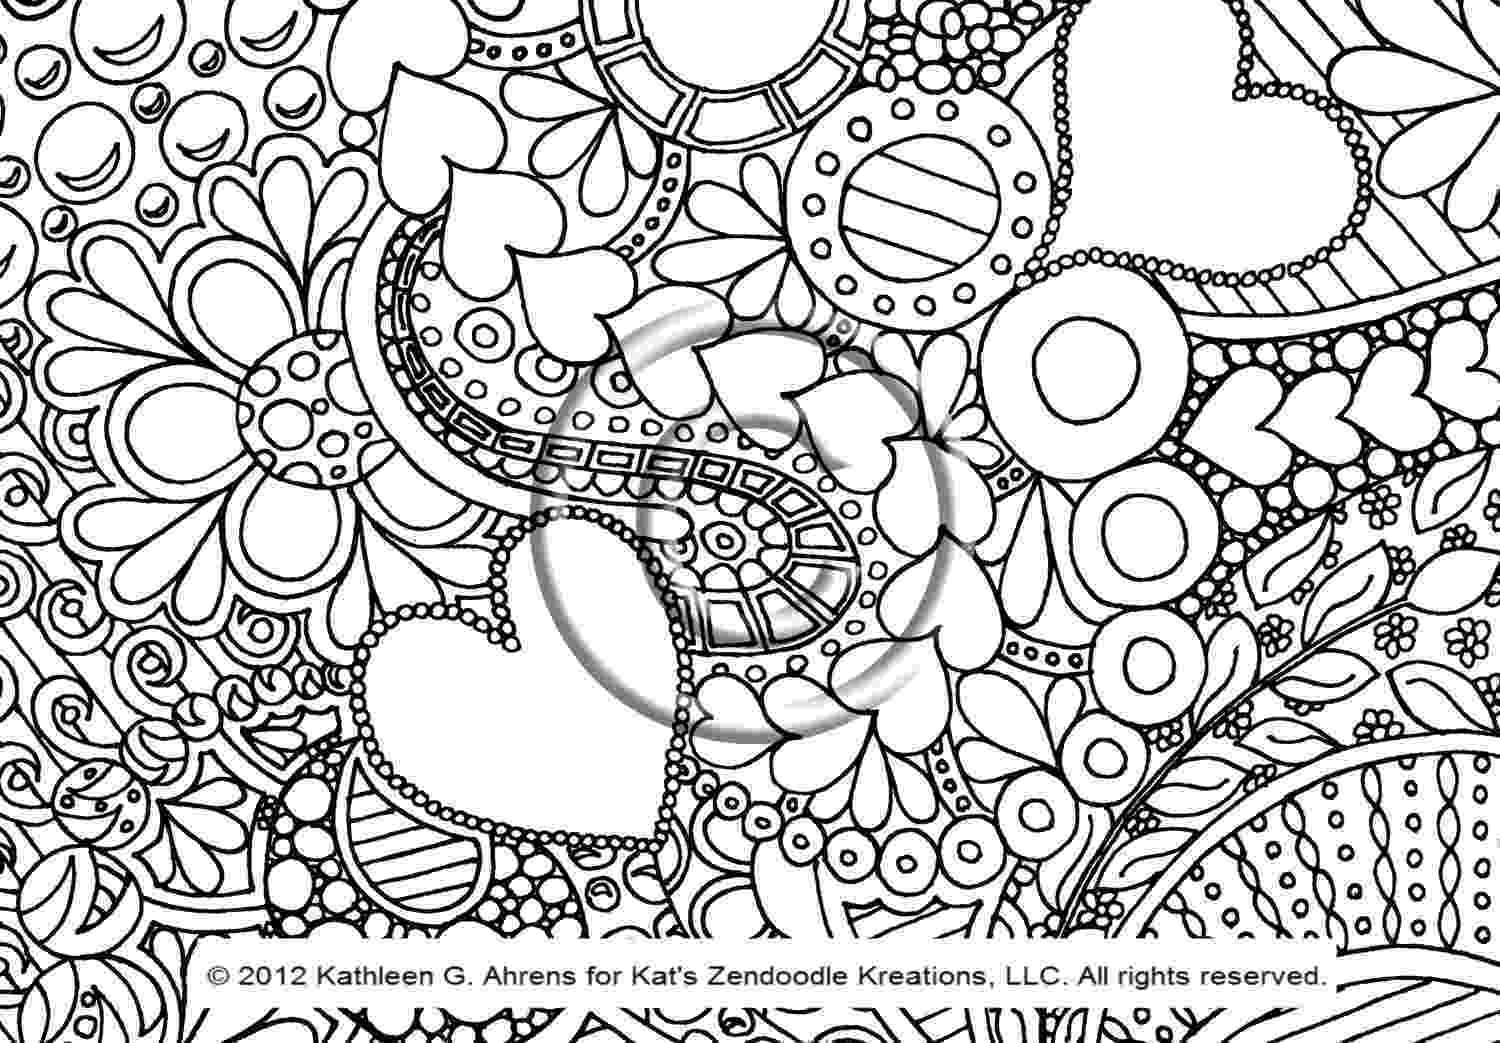 free printable pattern coloring pages coloring page world paisley flower pattern portrait printable free pattern coloring pages